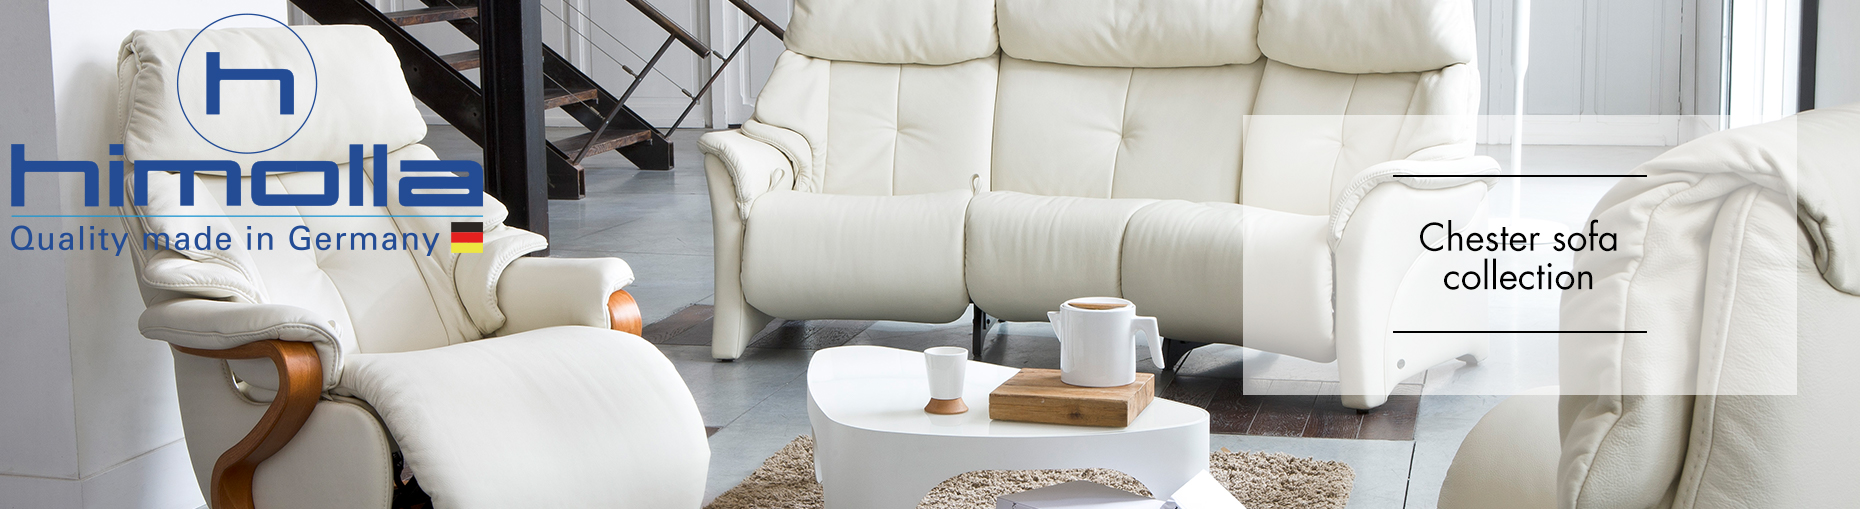 Chester Sofa Collection by Himolla